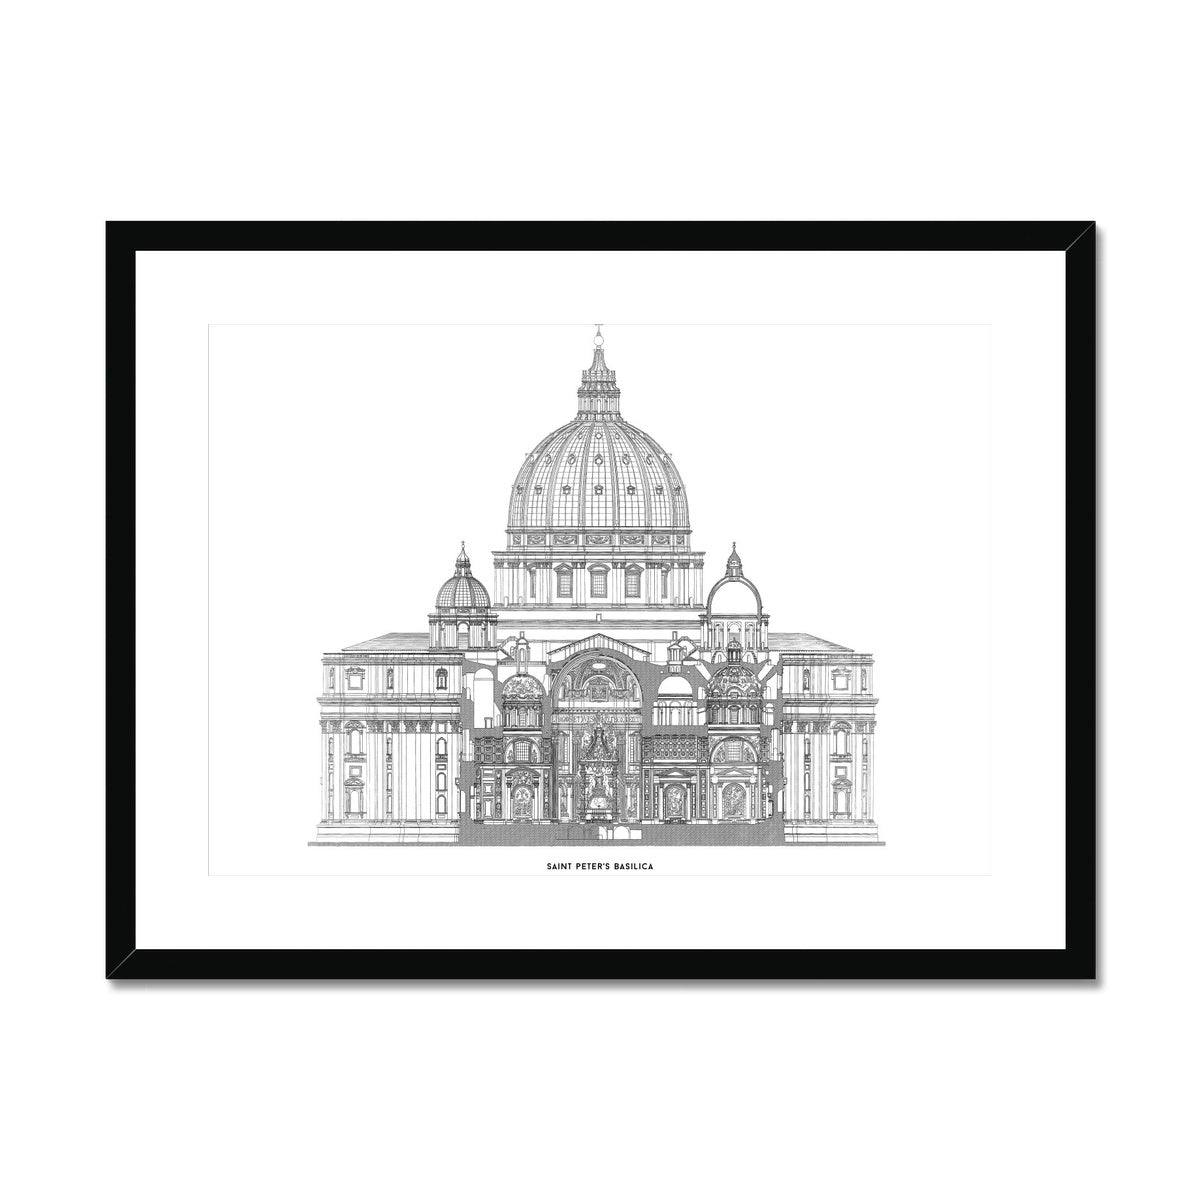 Saint Peter's Basilica - Primary Elevation Cross Section - White -  Framed & Mounted Print